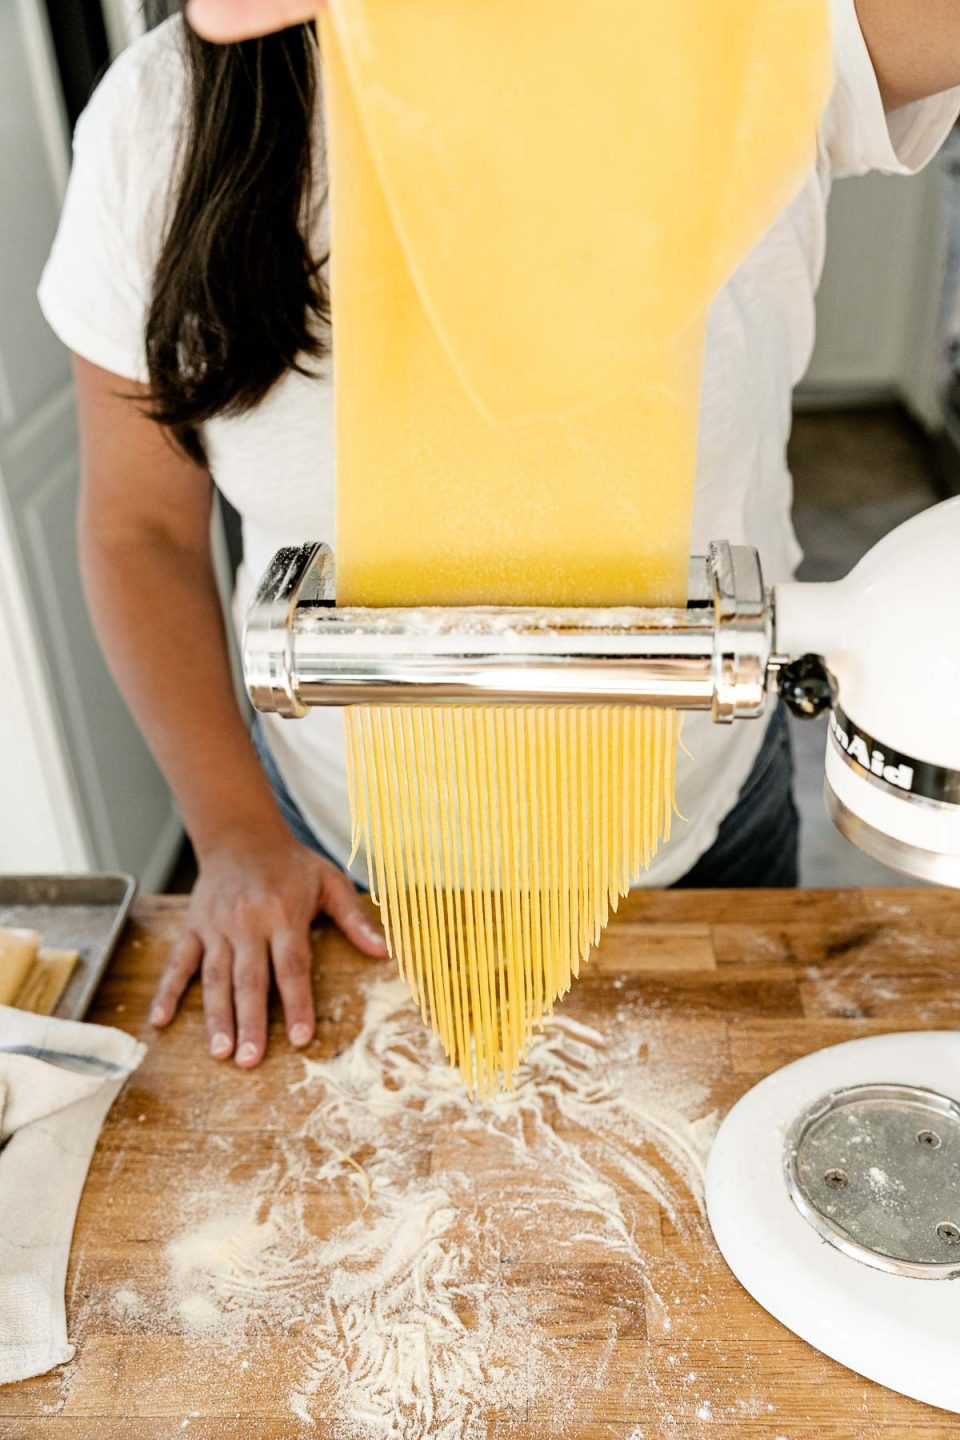 Jess of Plays Well With Butter feeds a large sheet of fresh pasta dough through a KitchenAid pasta cutting attachment connected to a Stand Mixer. As the pasta dough is fed through the cutter, the dough is cut into single strands of spaghetti. The Stand Mixer rests atop a butcher block countertop. The countertop has been lightly dusted with flour and an aluminum baking sheet also sits on top of the countertop and is covered by a kitchen towel.